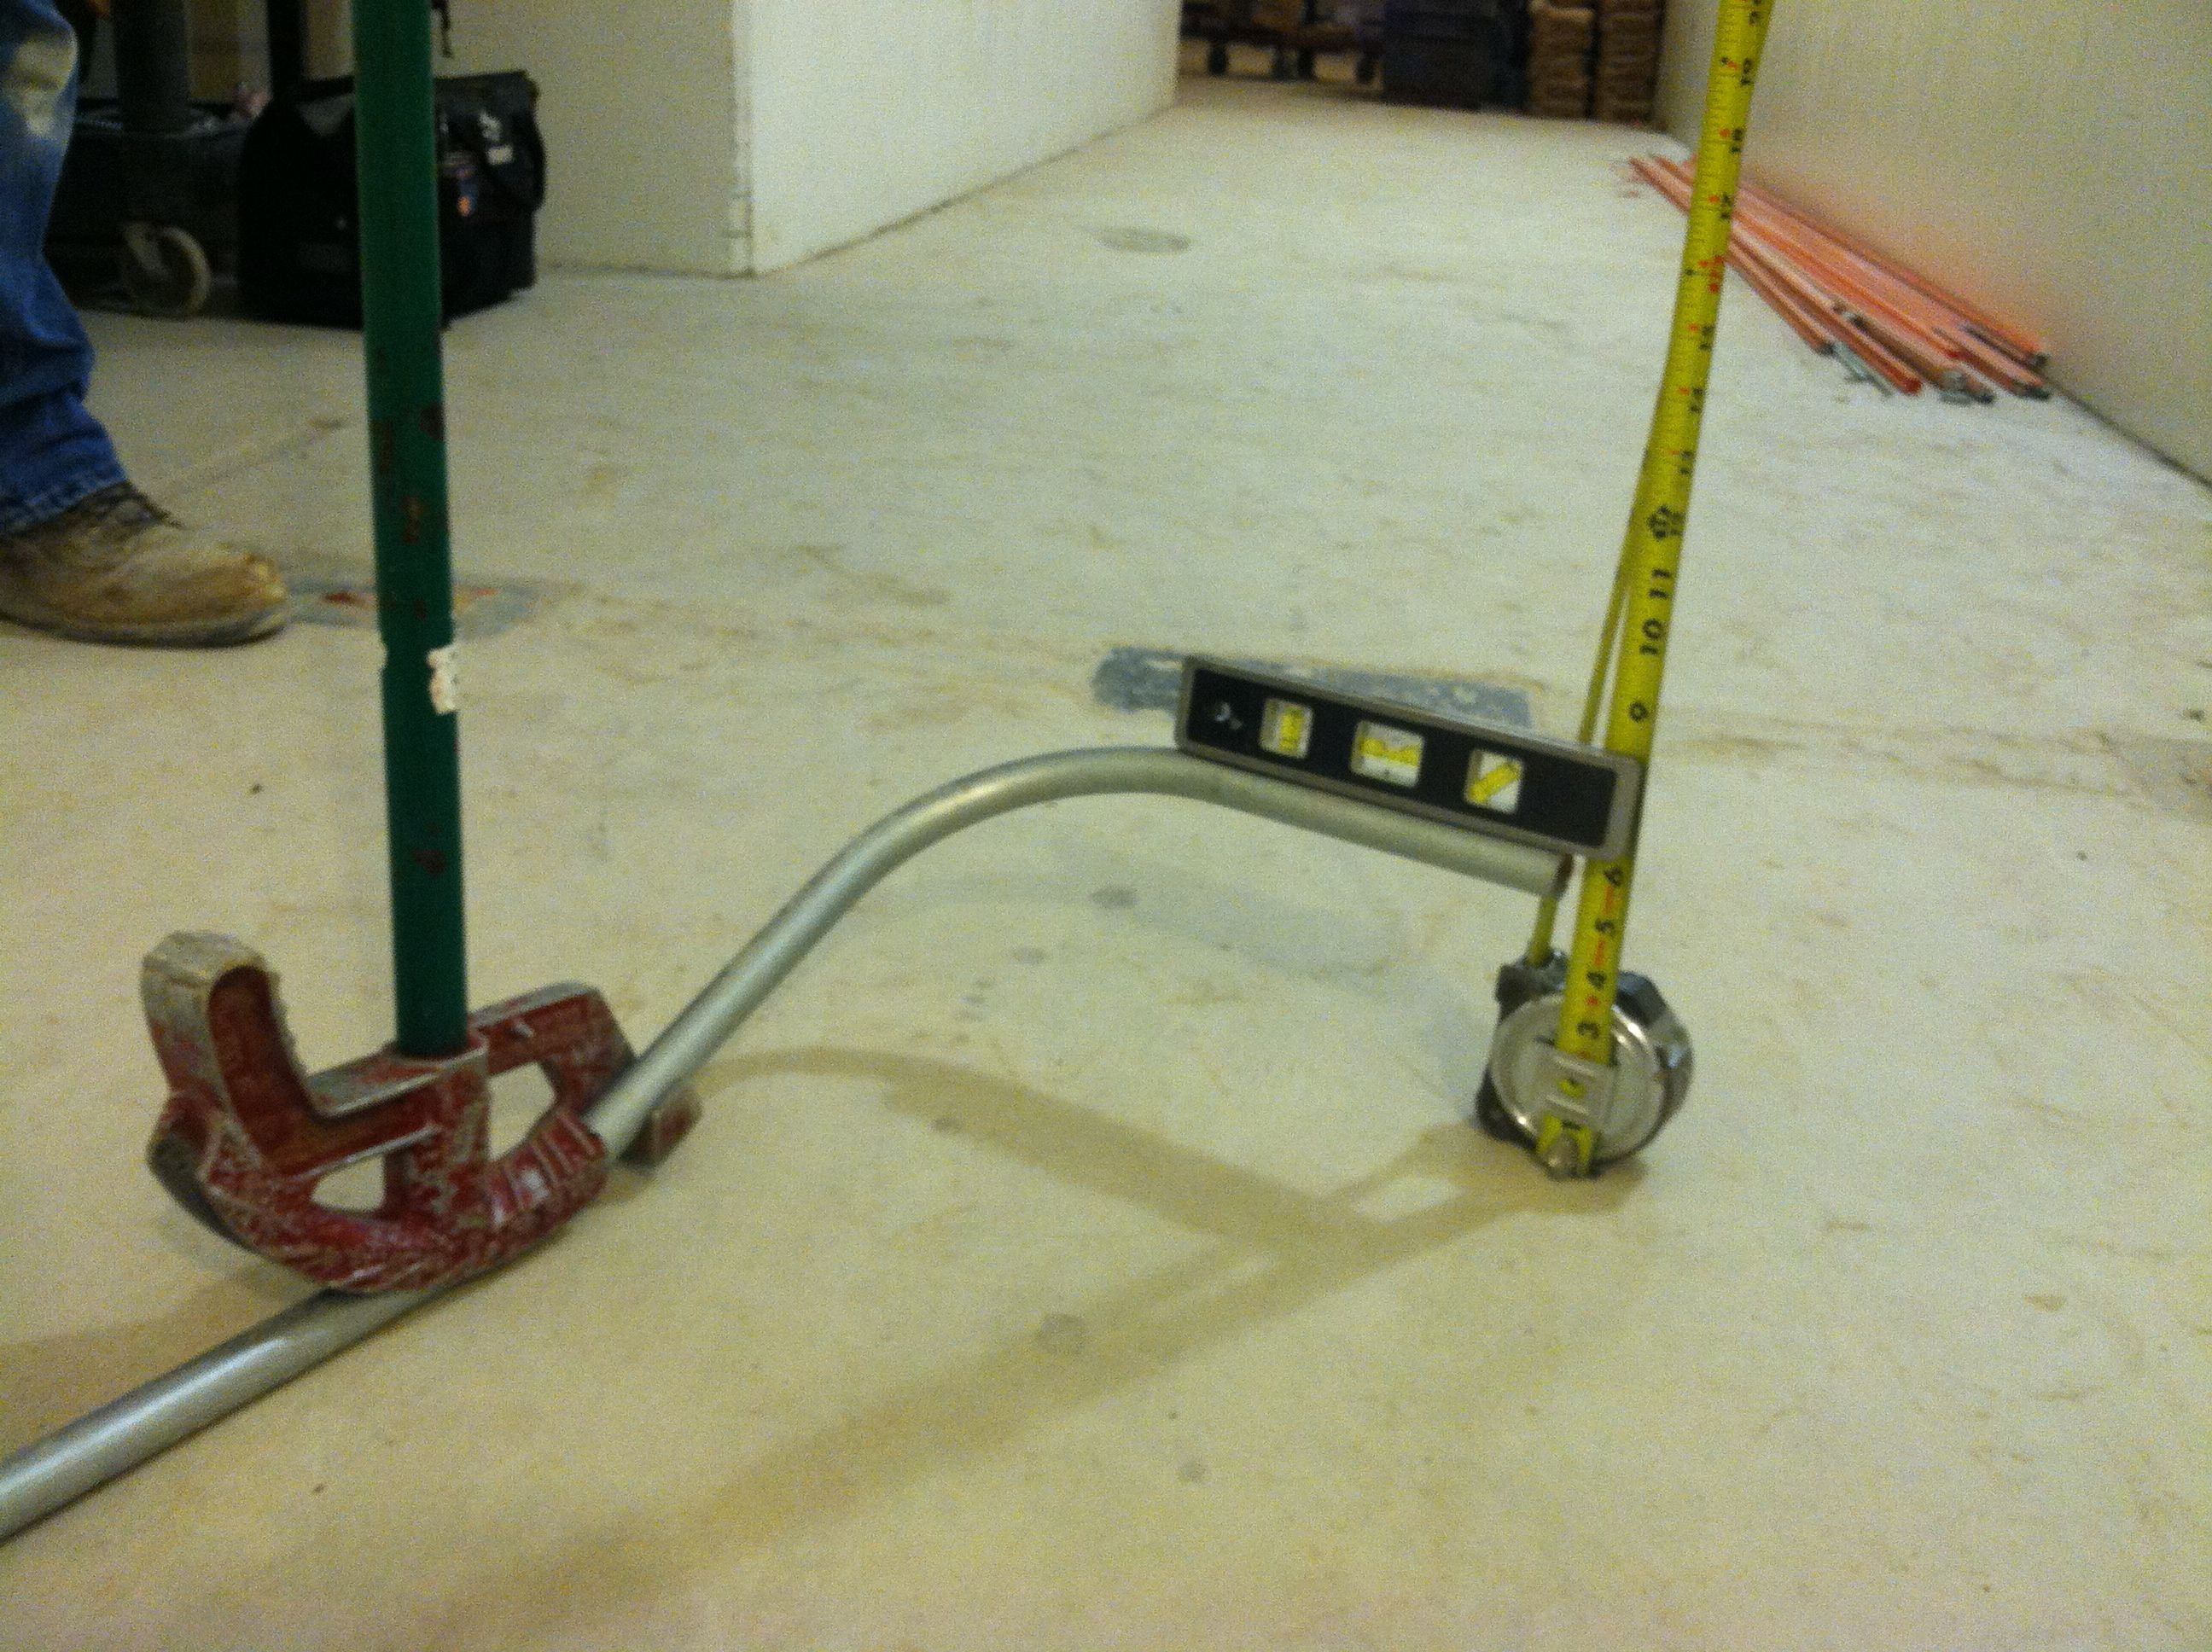 A Trick To Help Electricians Measure Kick When Bending Conduit By House Wiring Tools Themselves Electrical Work